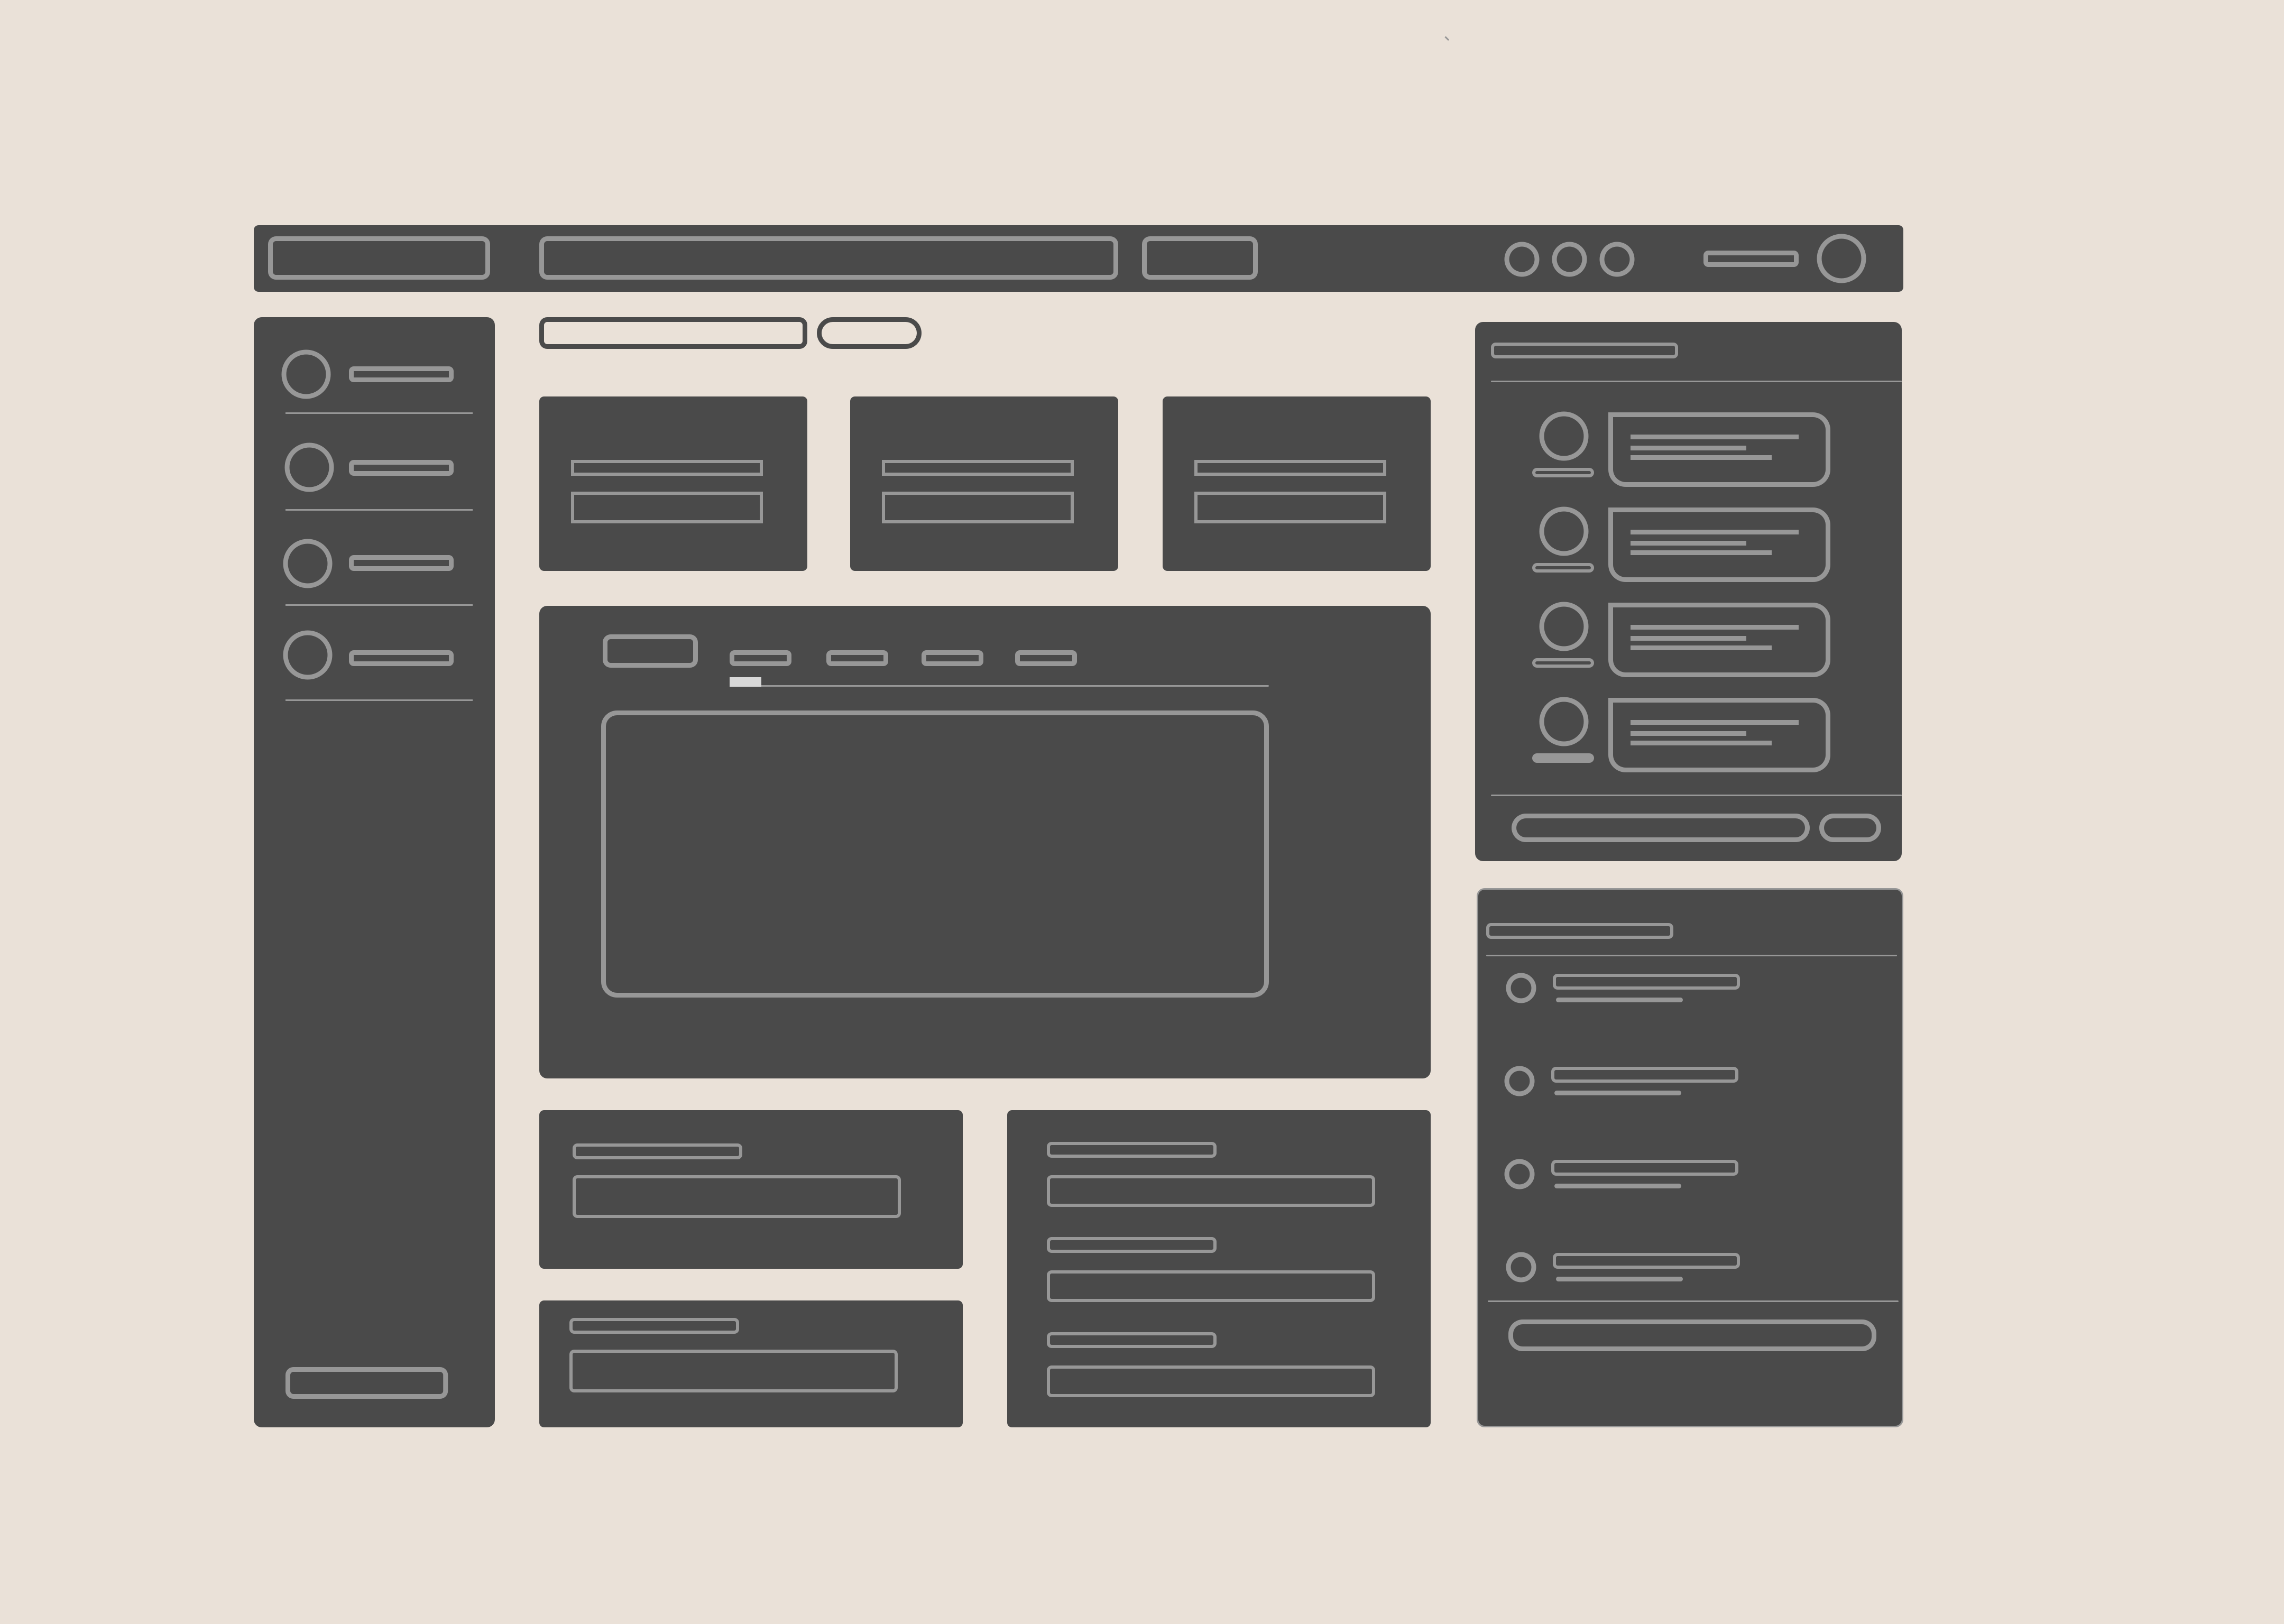 Dashboard_overview_wireframe